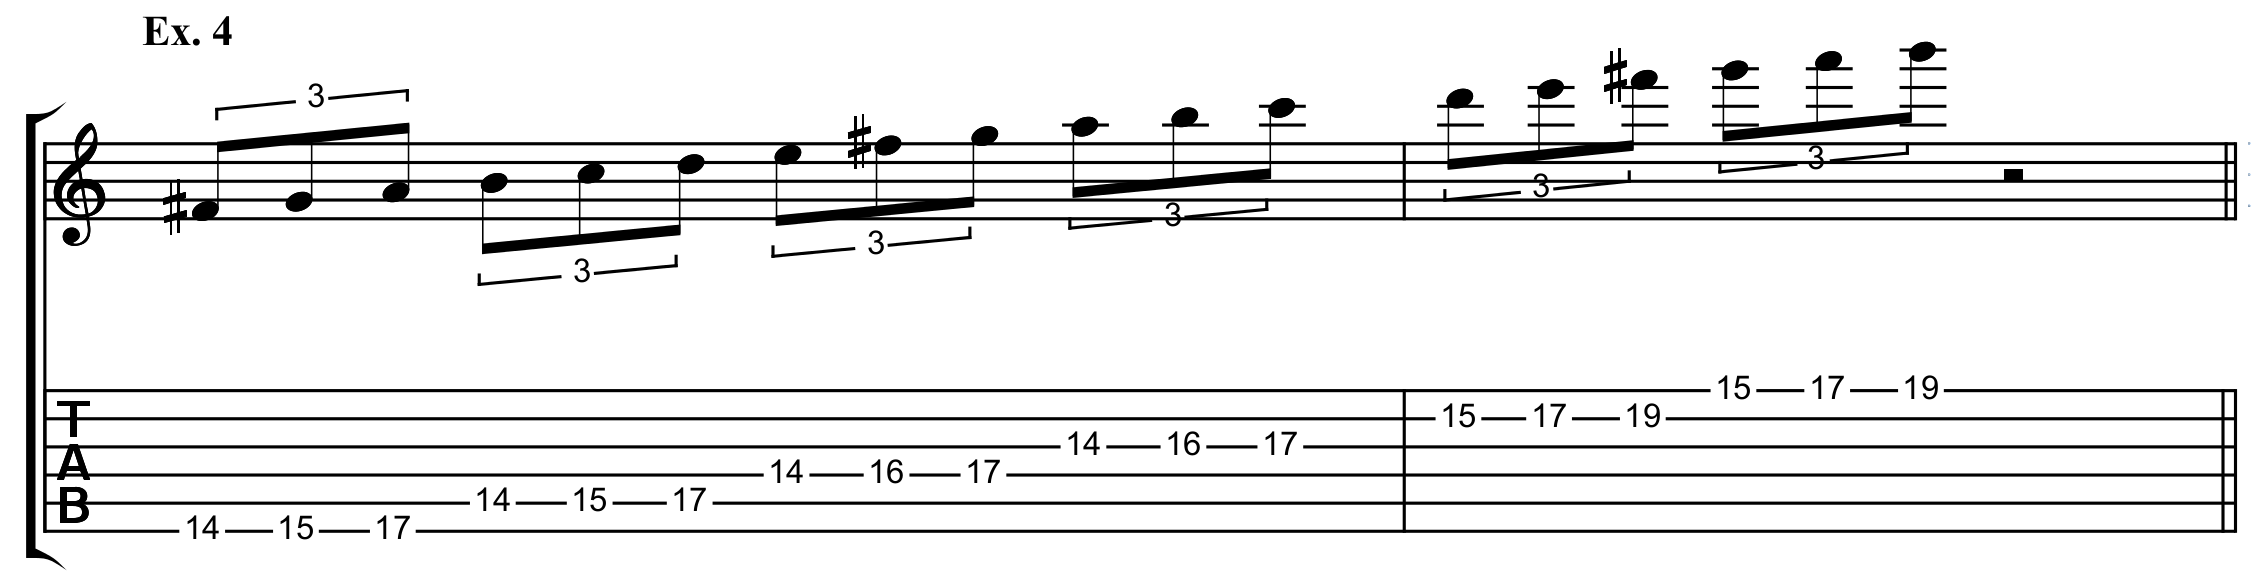 the second three note per string scale shape in E minor